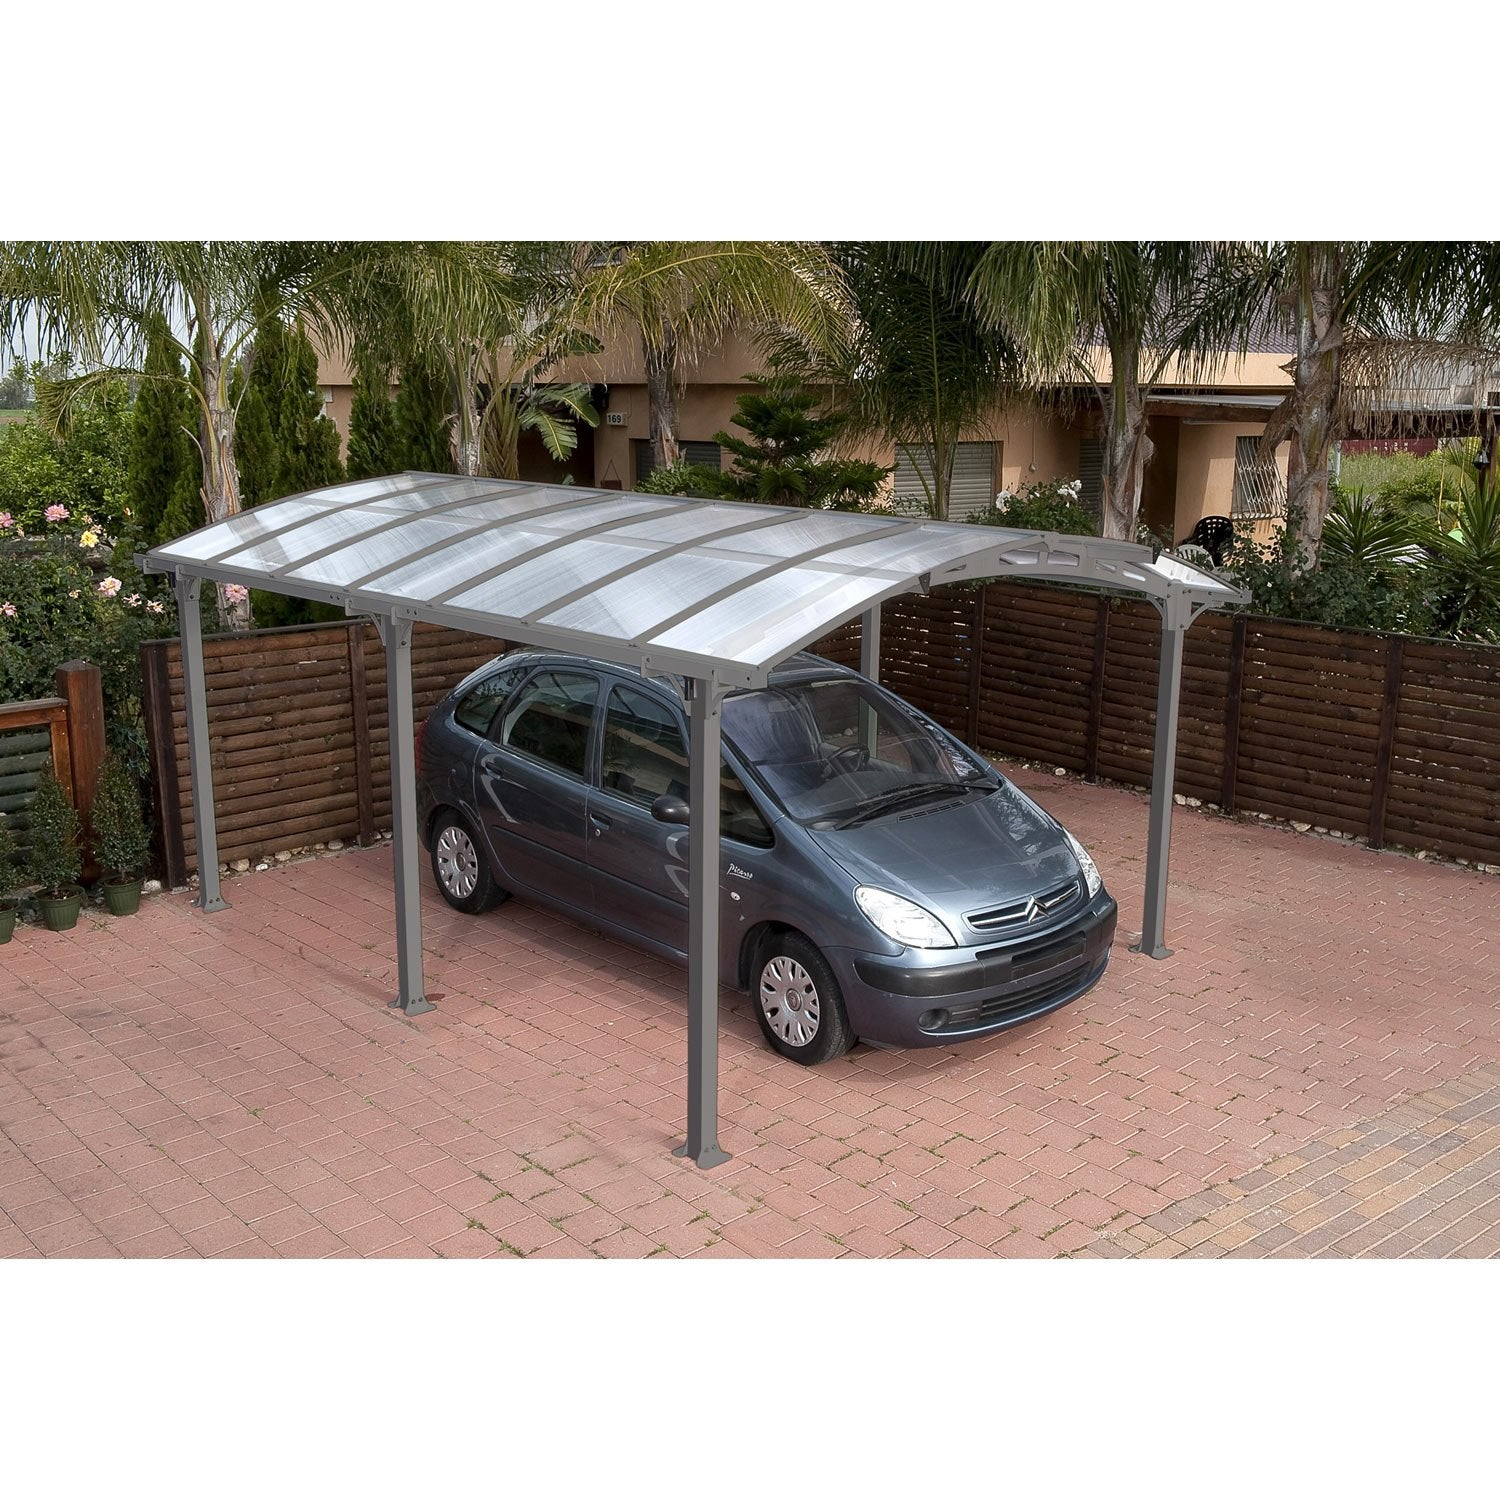 Carport m tal arcadia 1 voiture m leroy merlin for Leroy merlin abri voiture